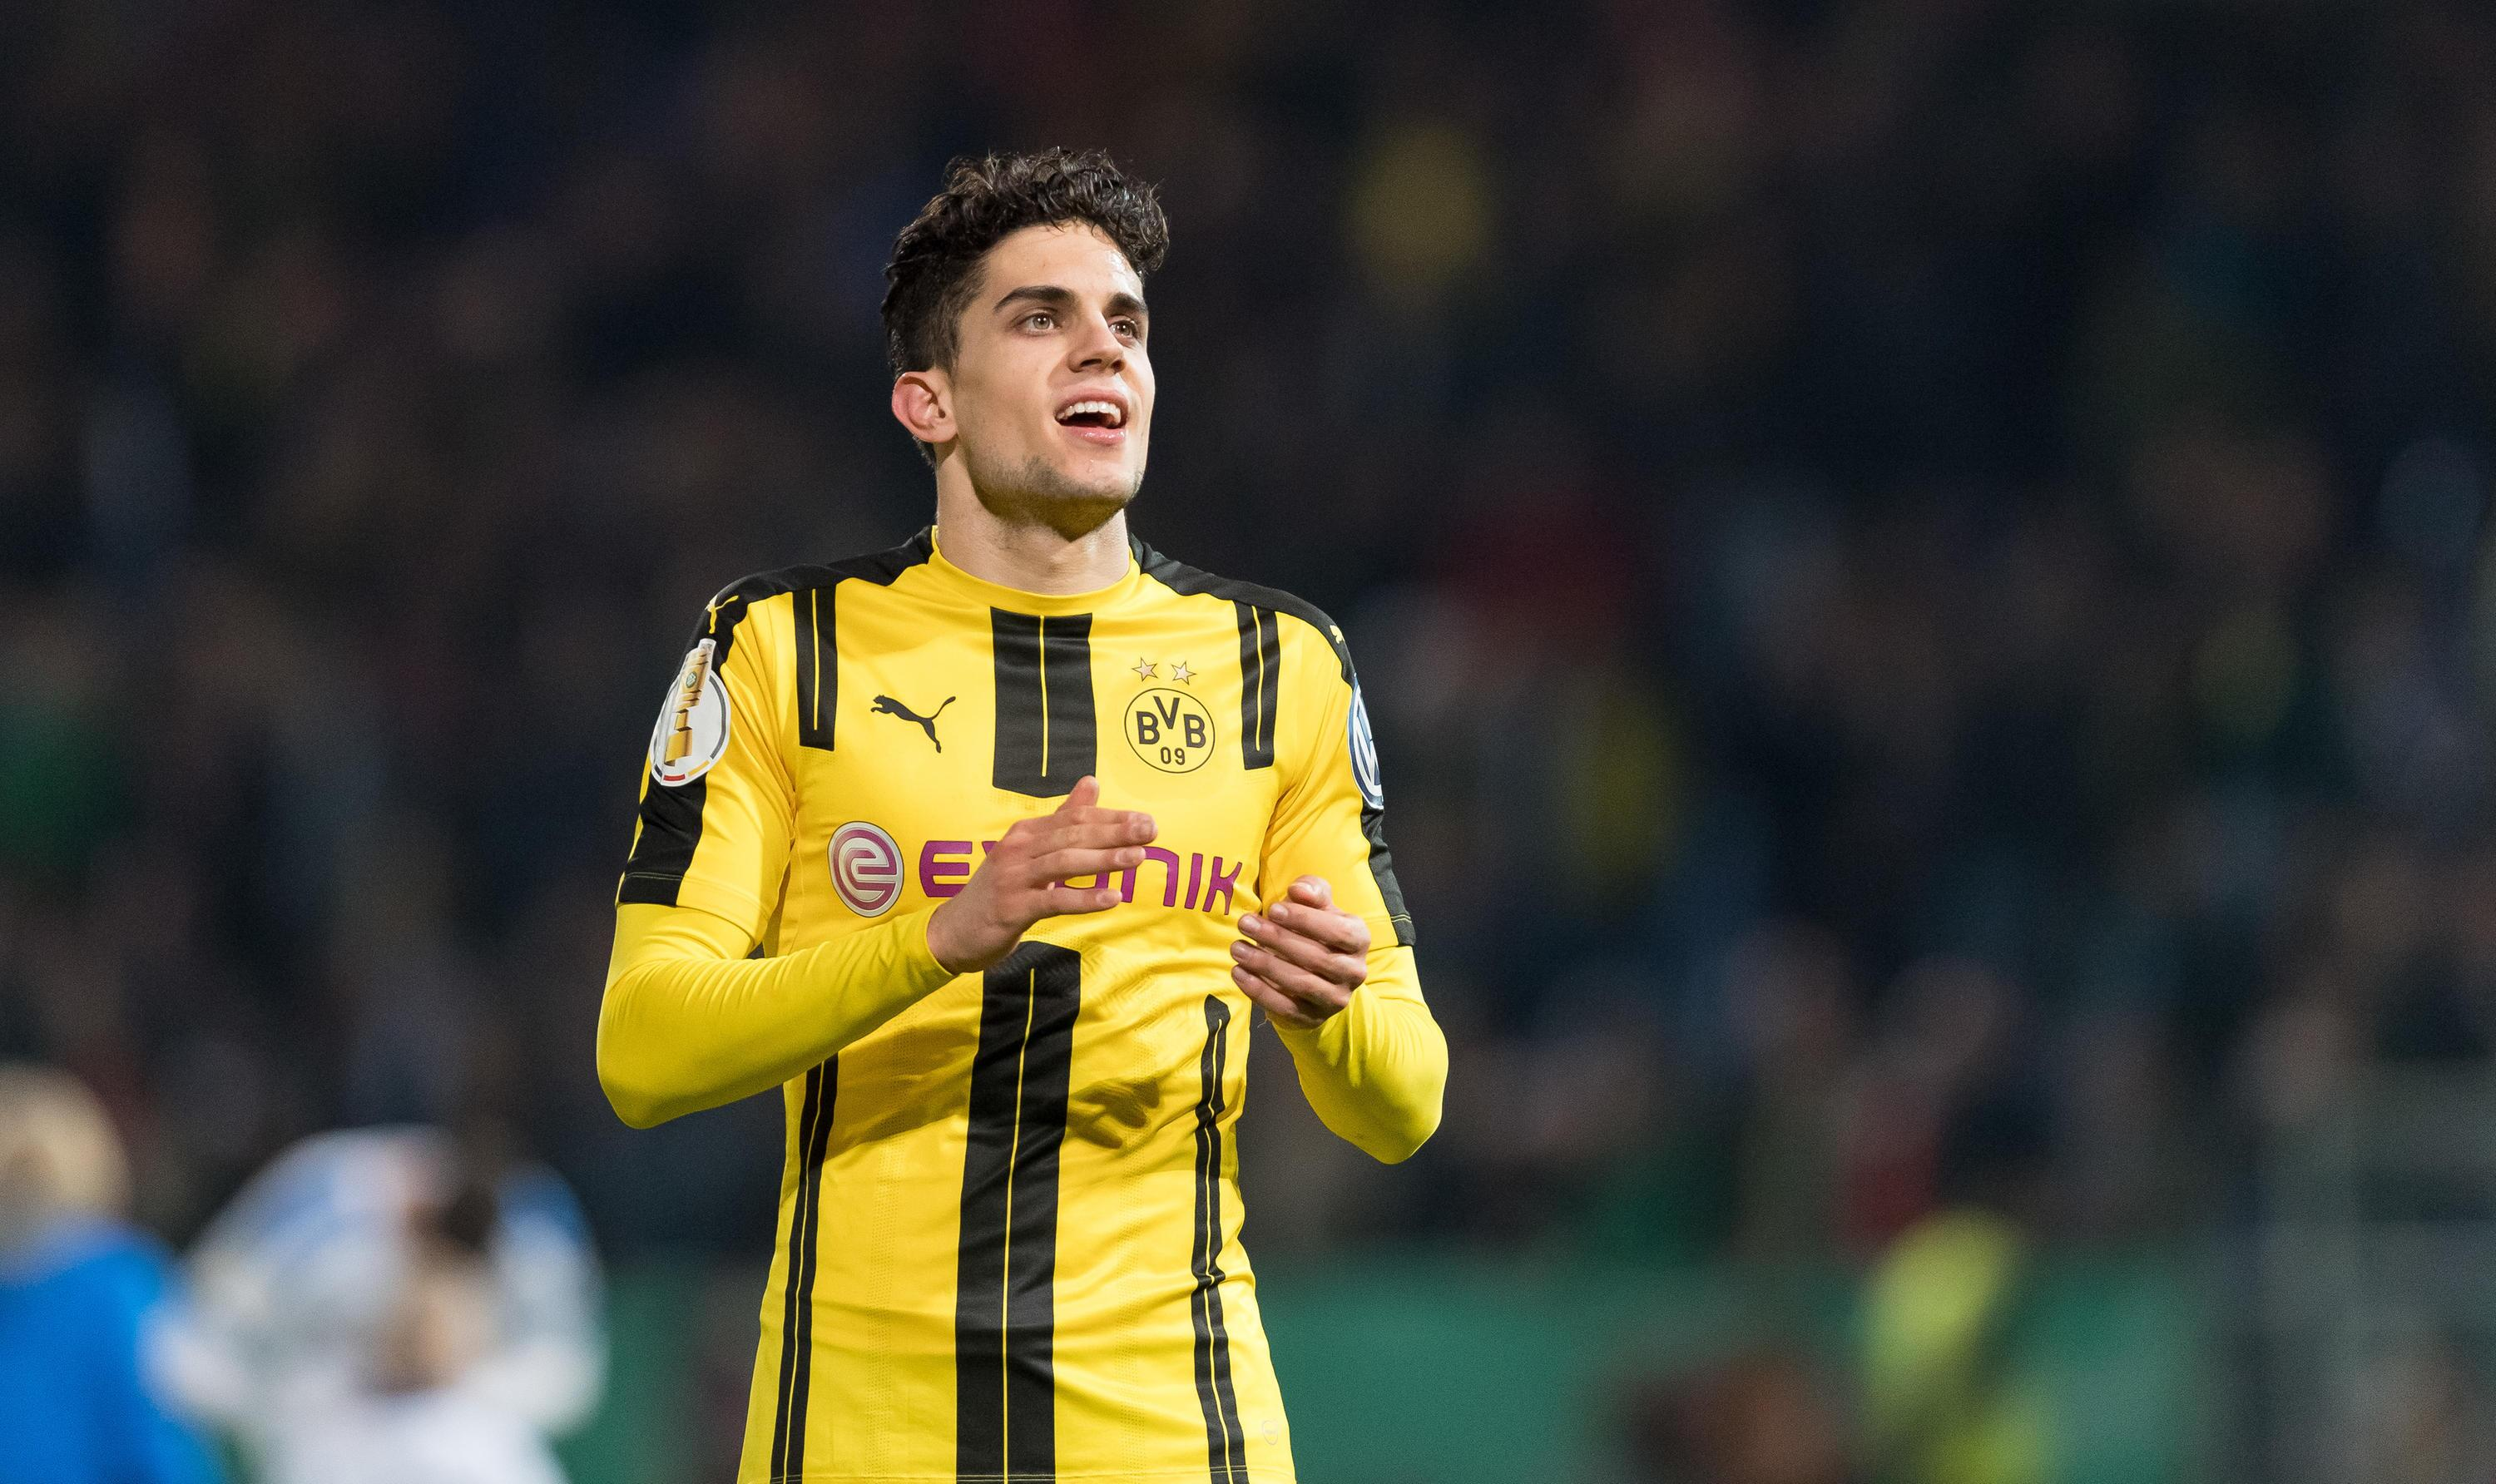 Marc Bartra Posts Encouraging Message Following Surgery After Dortmund Bomb Blast